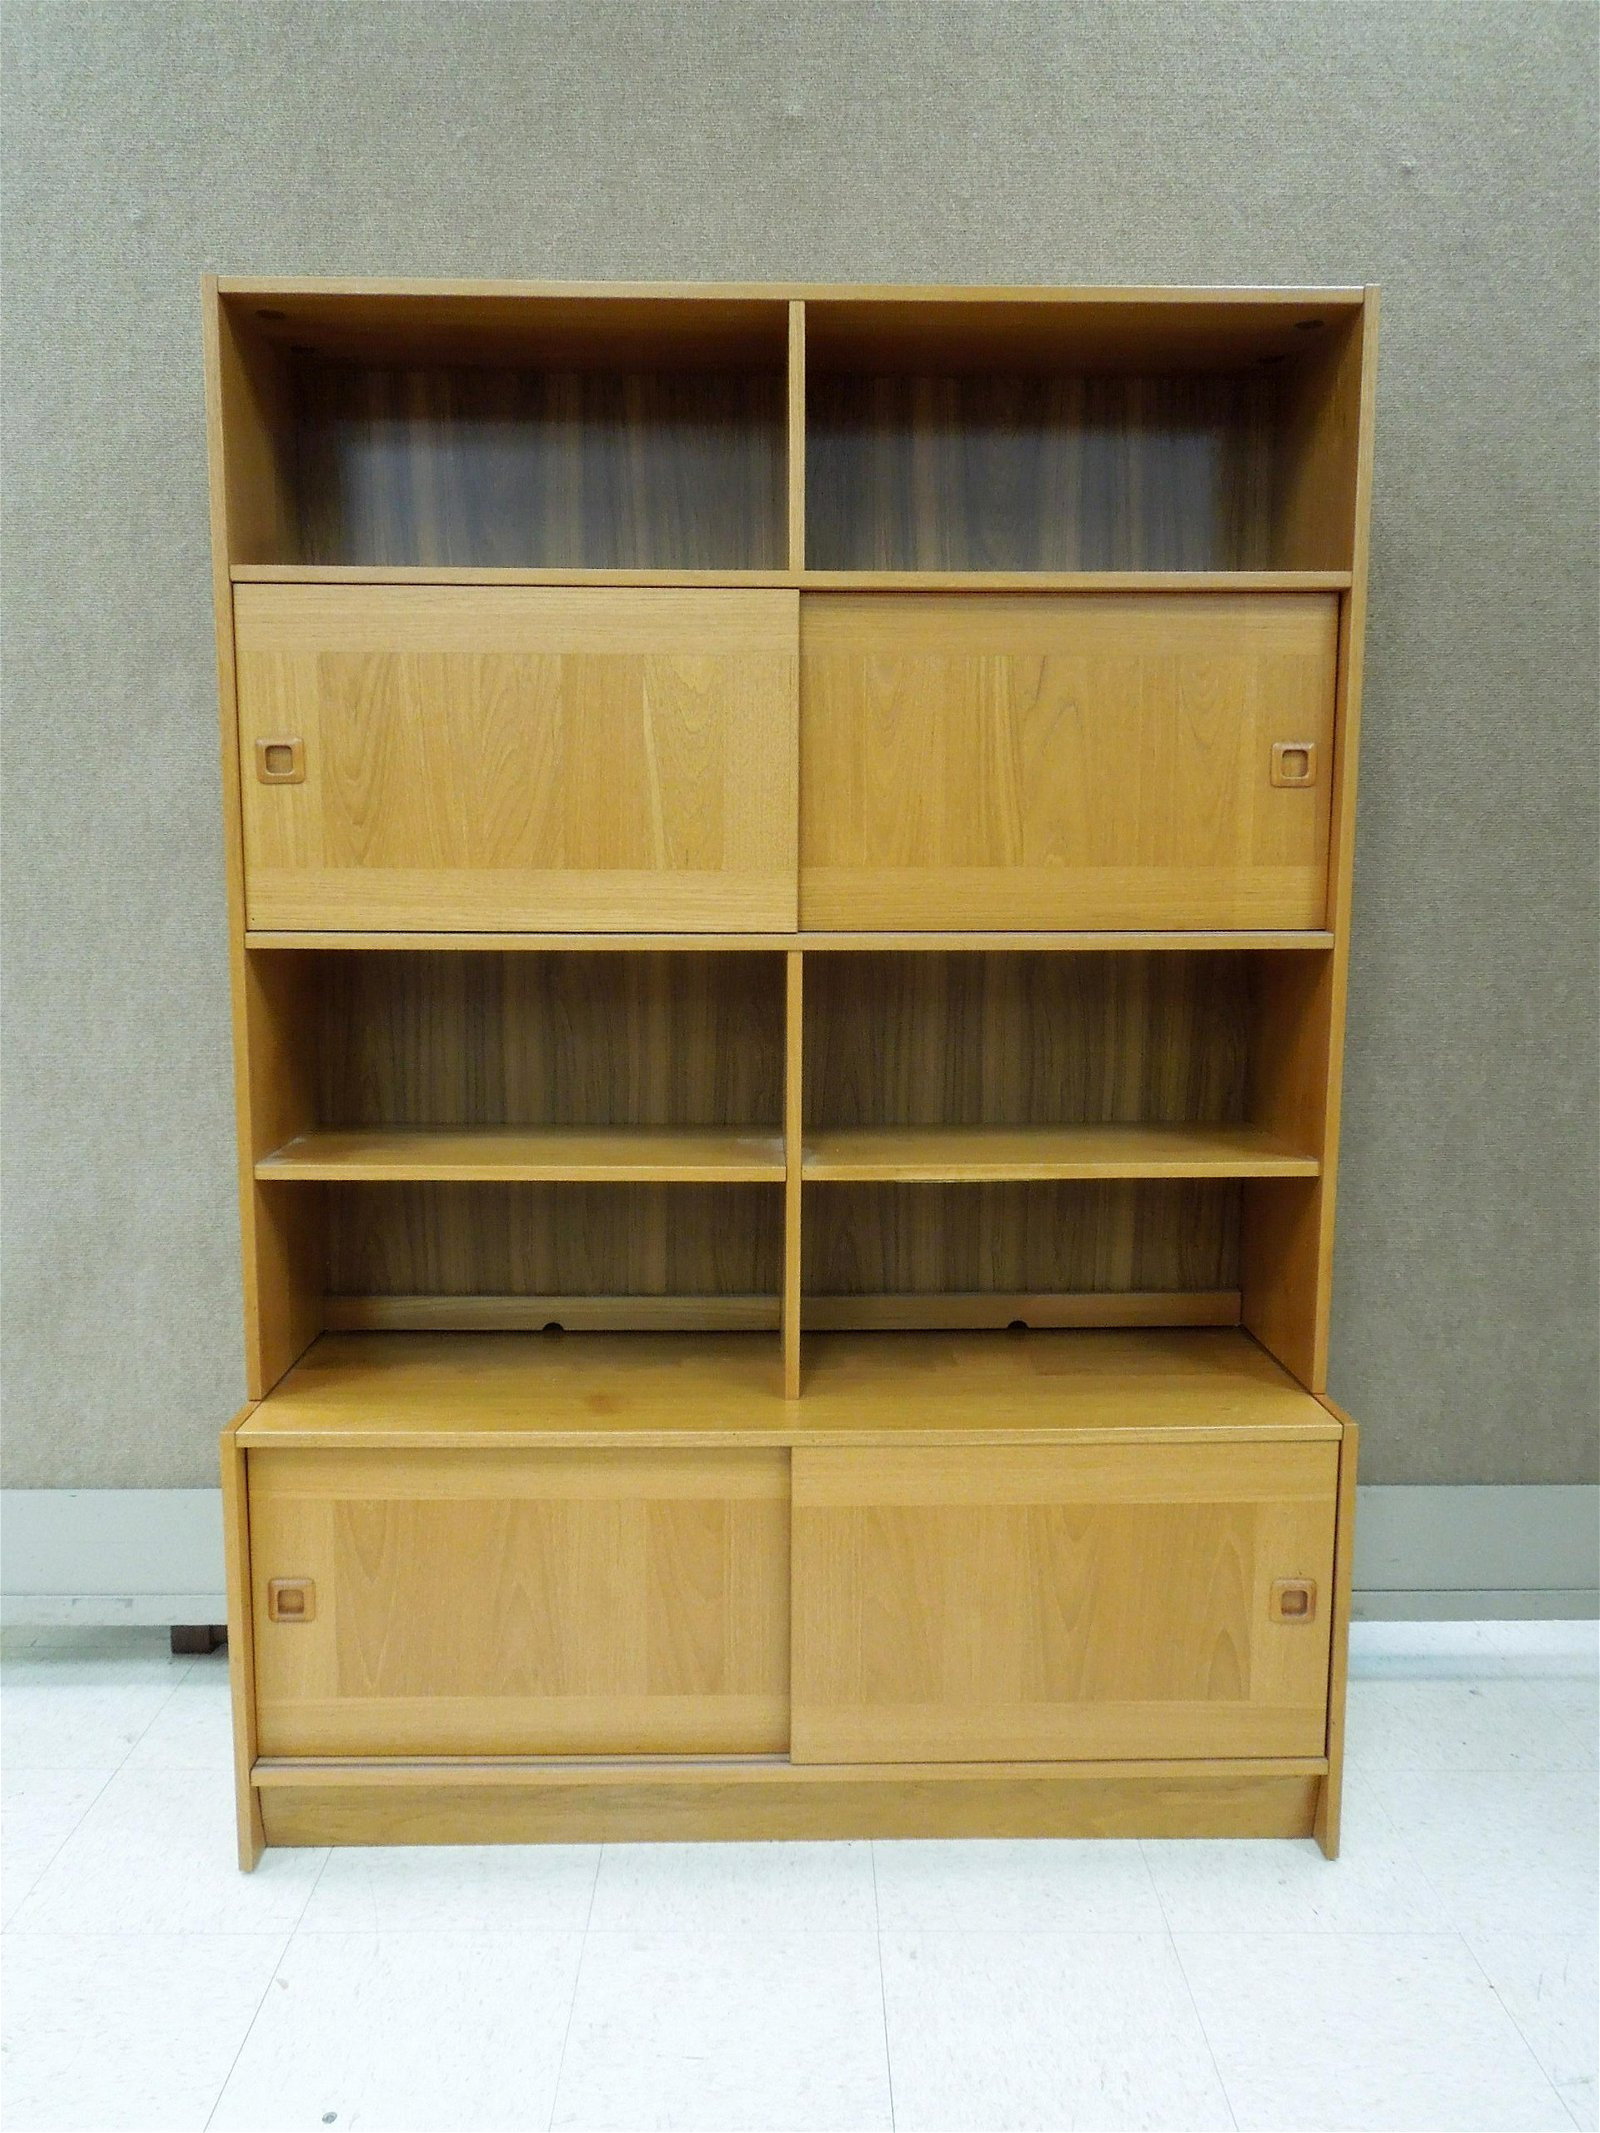 Domino Mobler Danish Teak 2-section Bookcase / Cabinet.